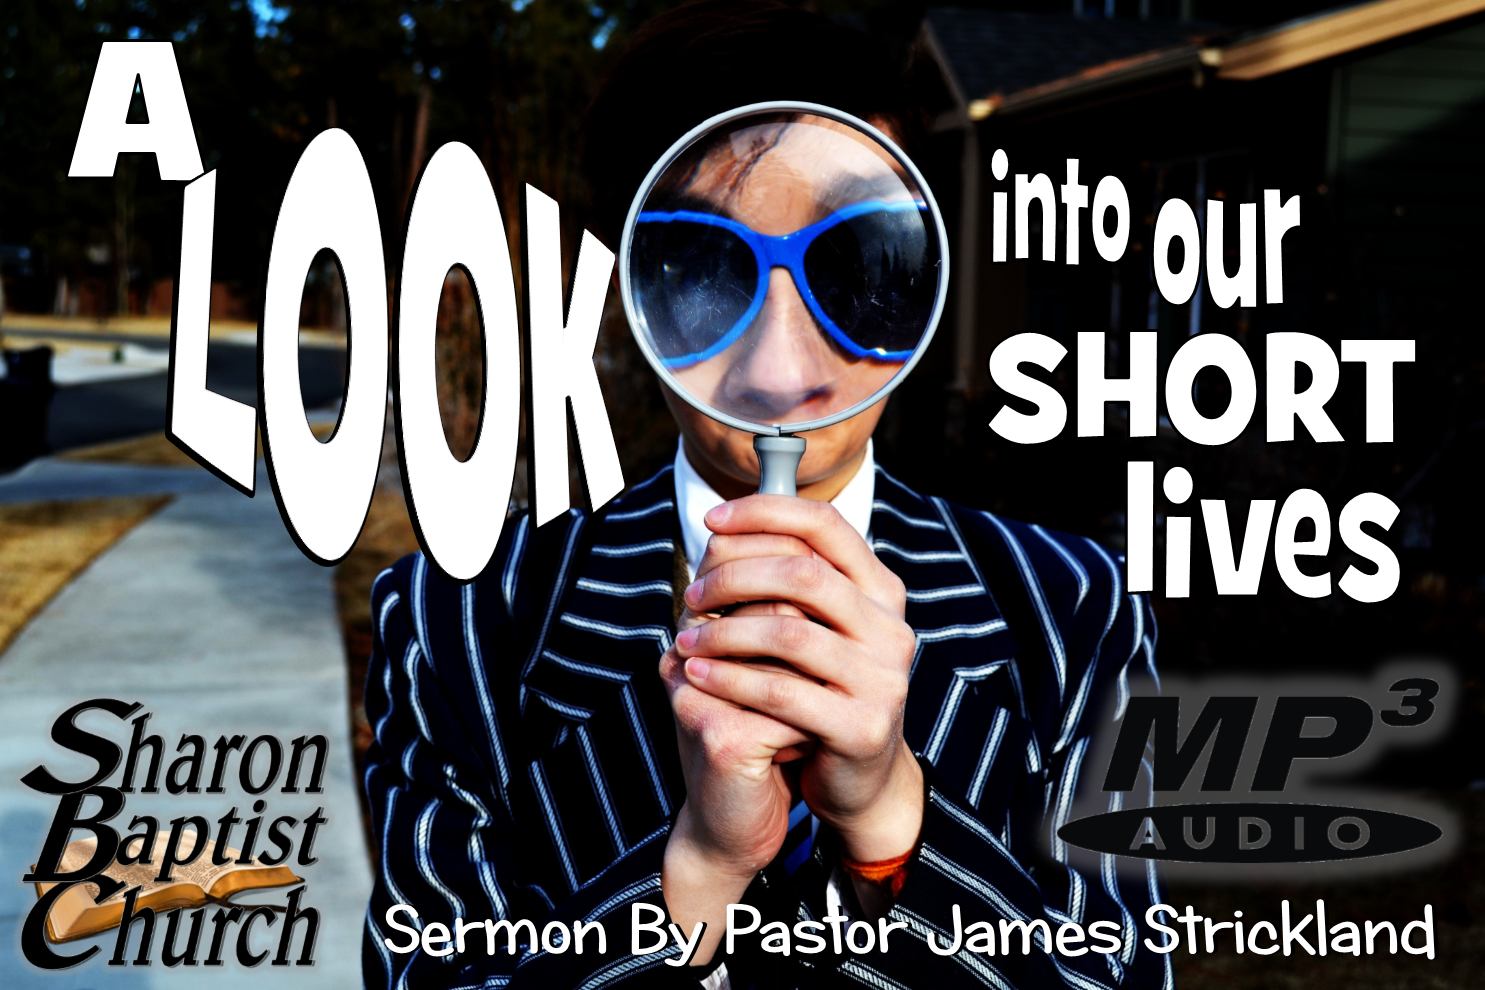 A look into our short lives SERMON AUDIO mp3